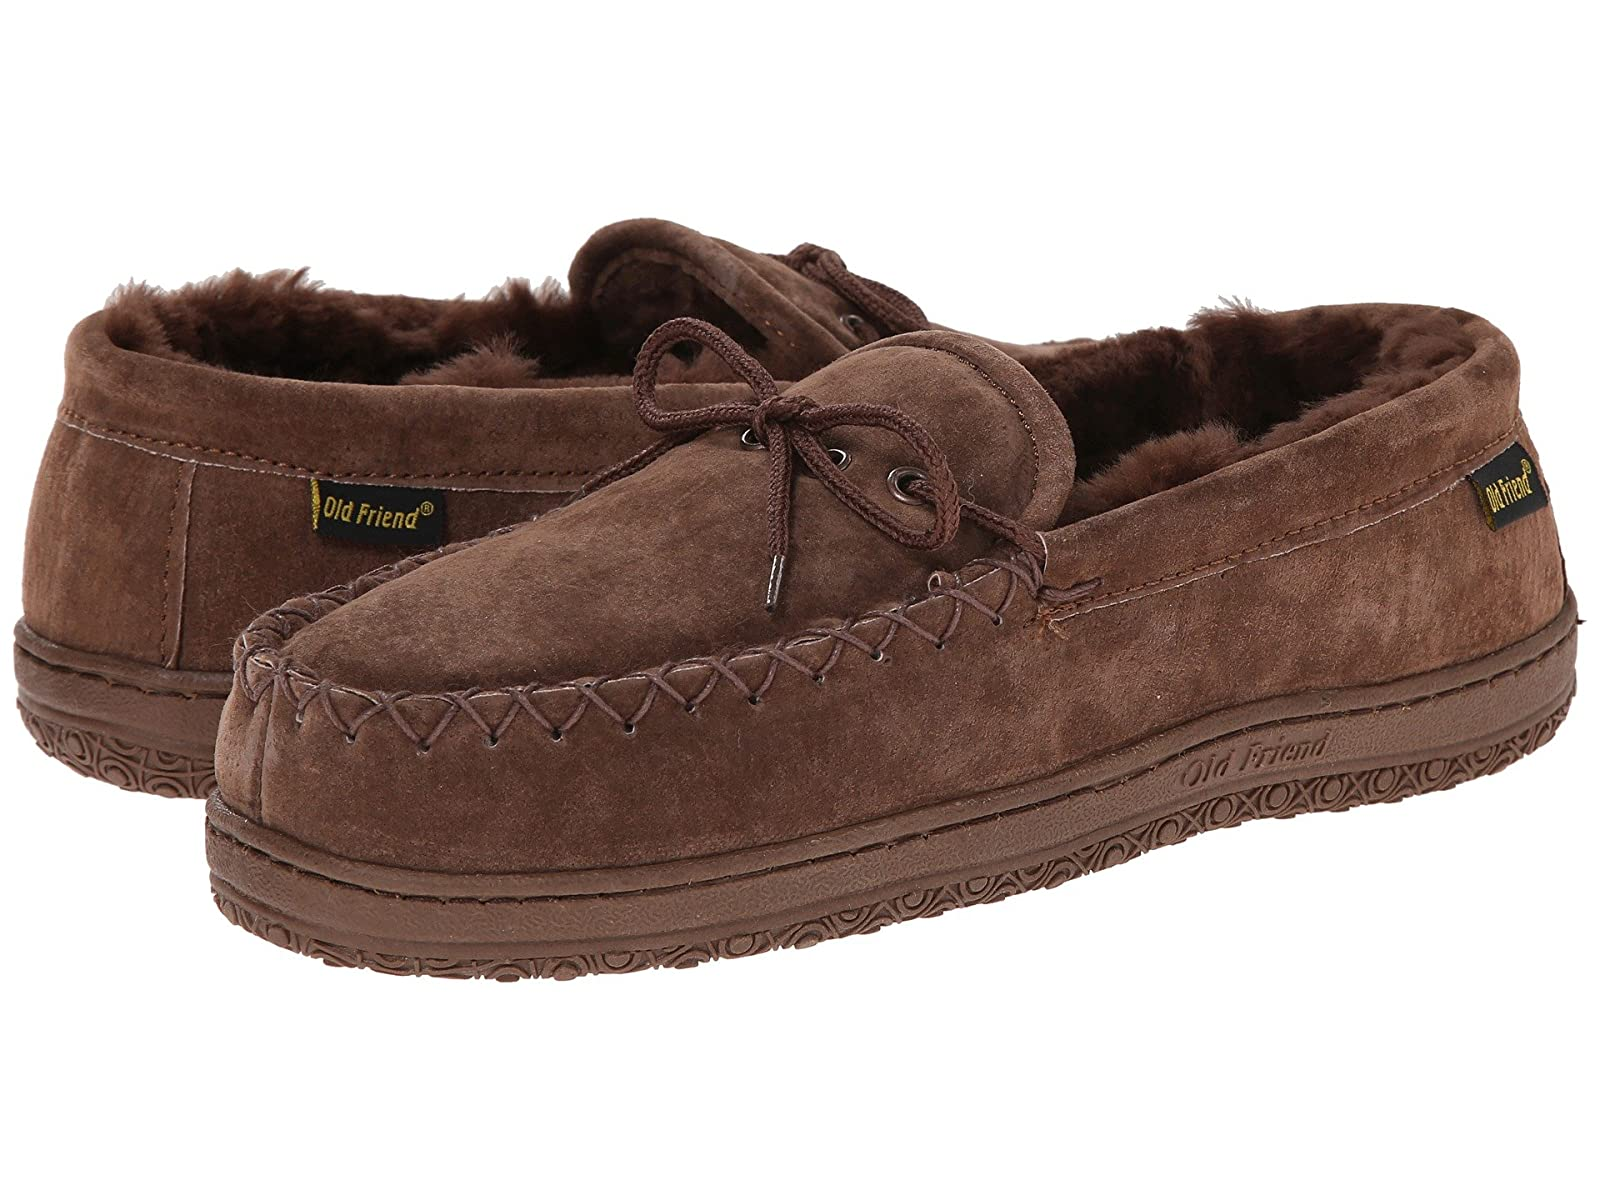 Men's/Women's:Old Friend Loafer Complete Moccasin: Complete Loafer specification area a650ac